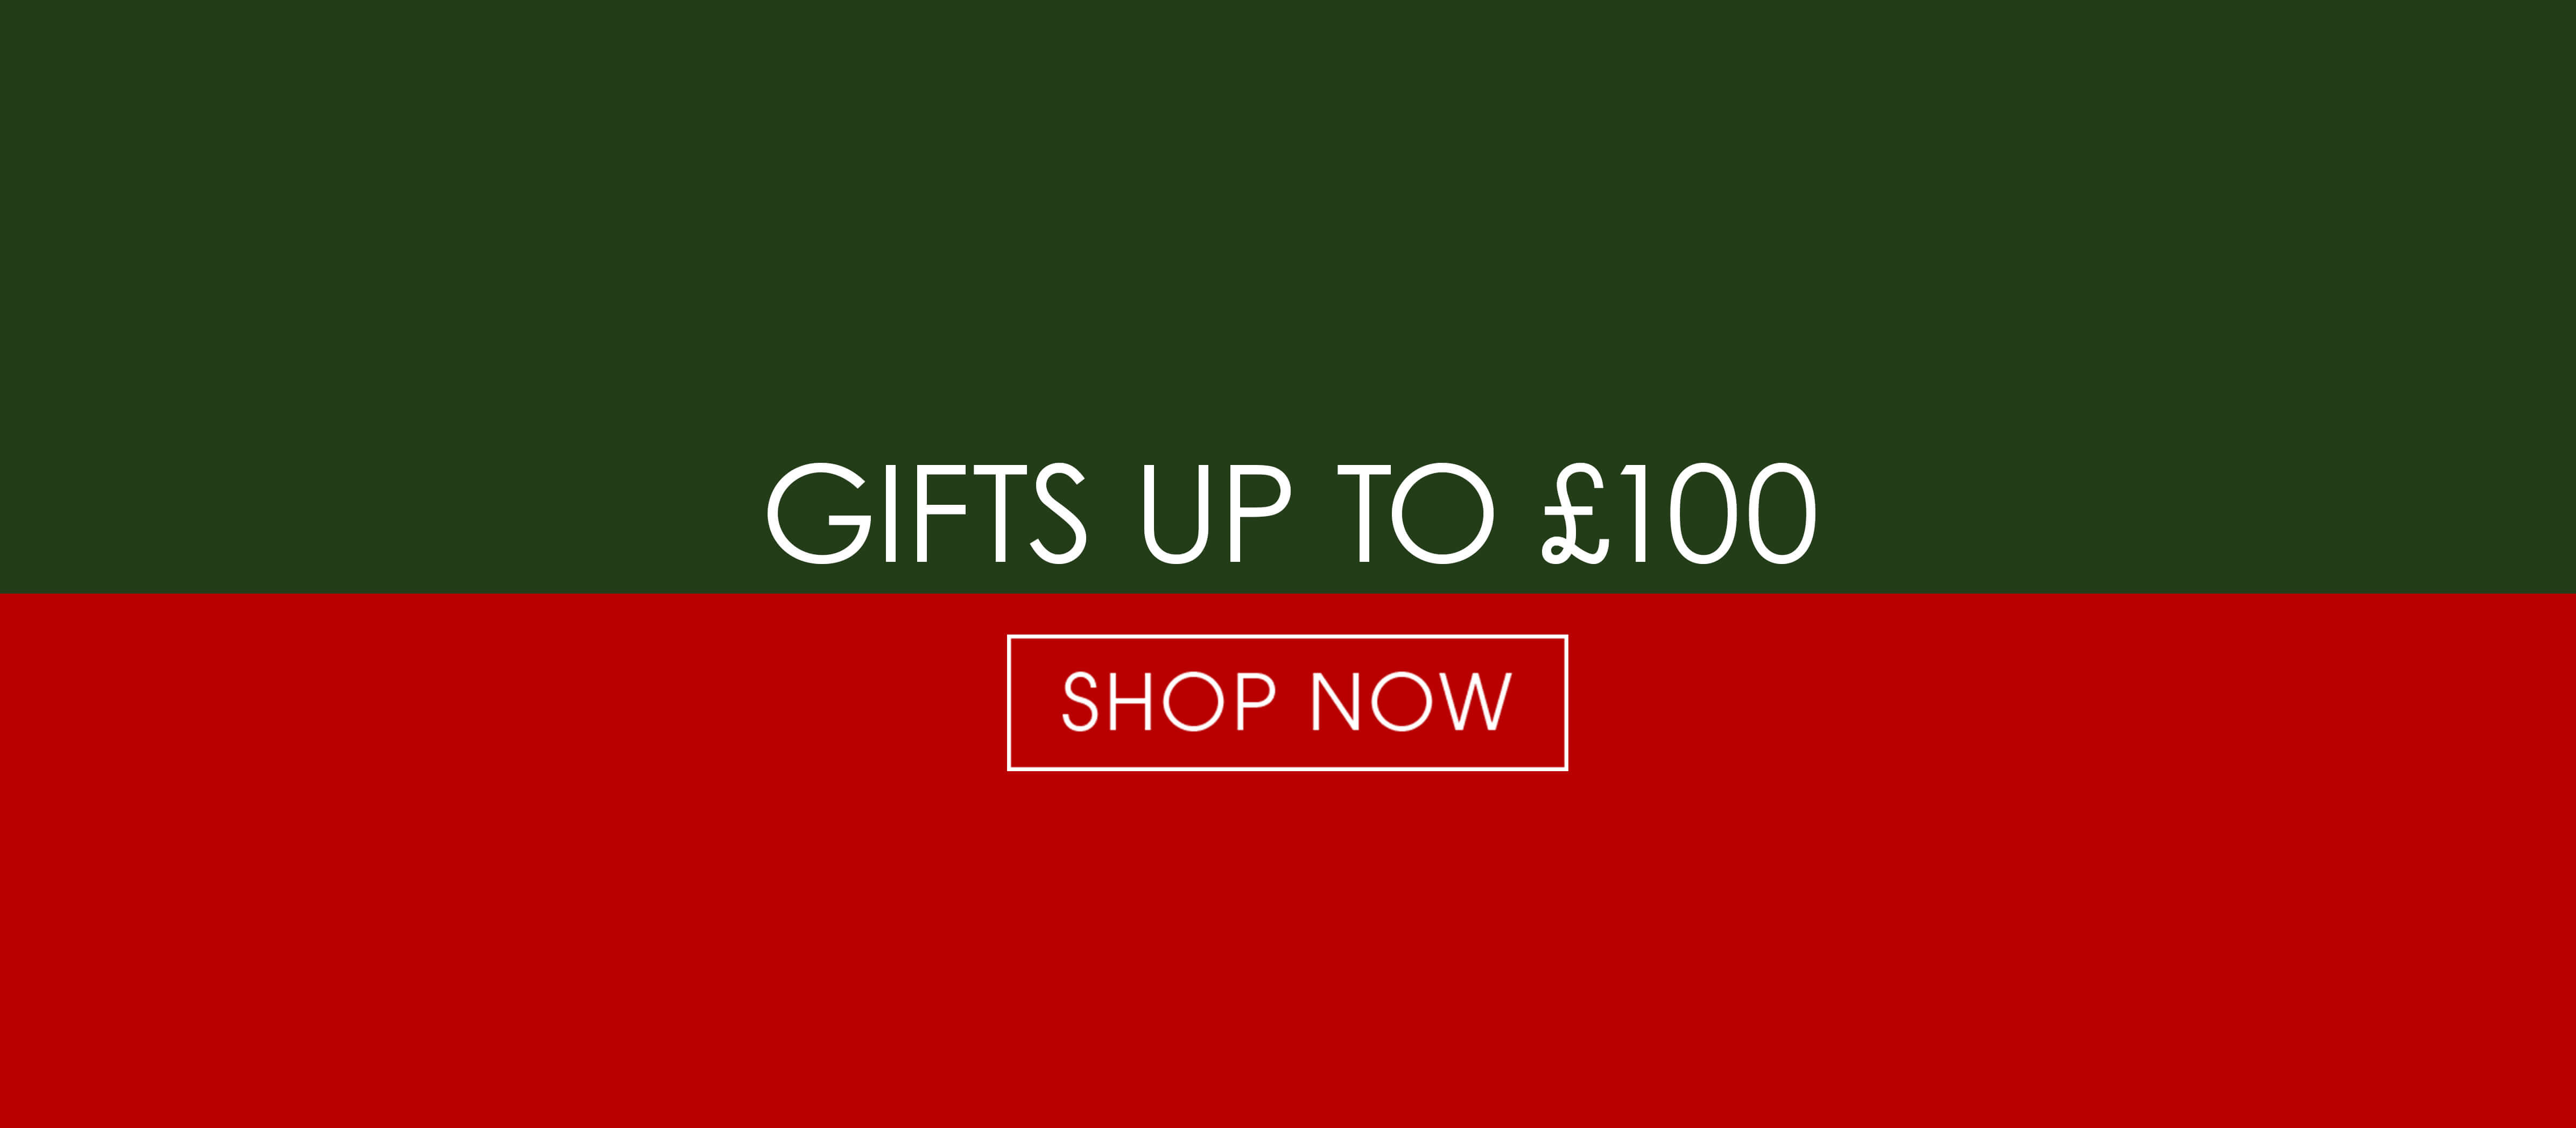 Gifts Up To £100